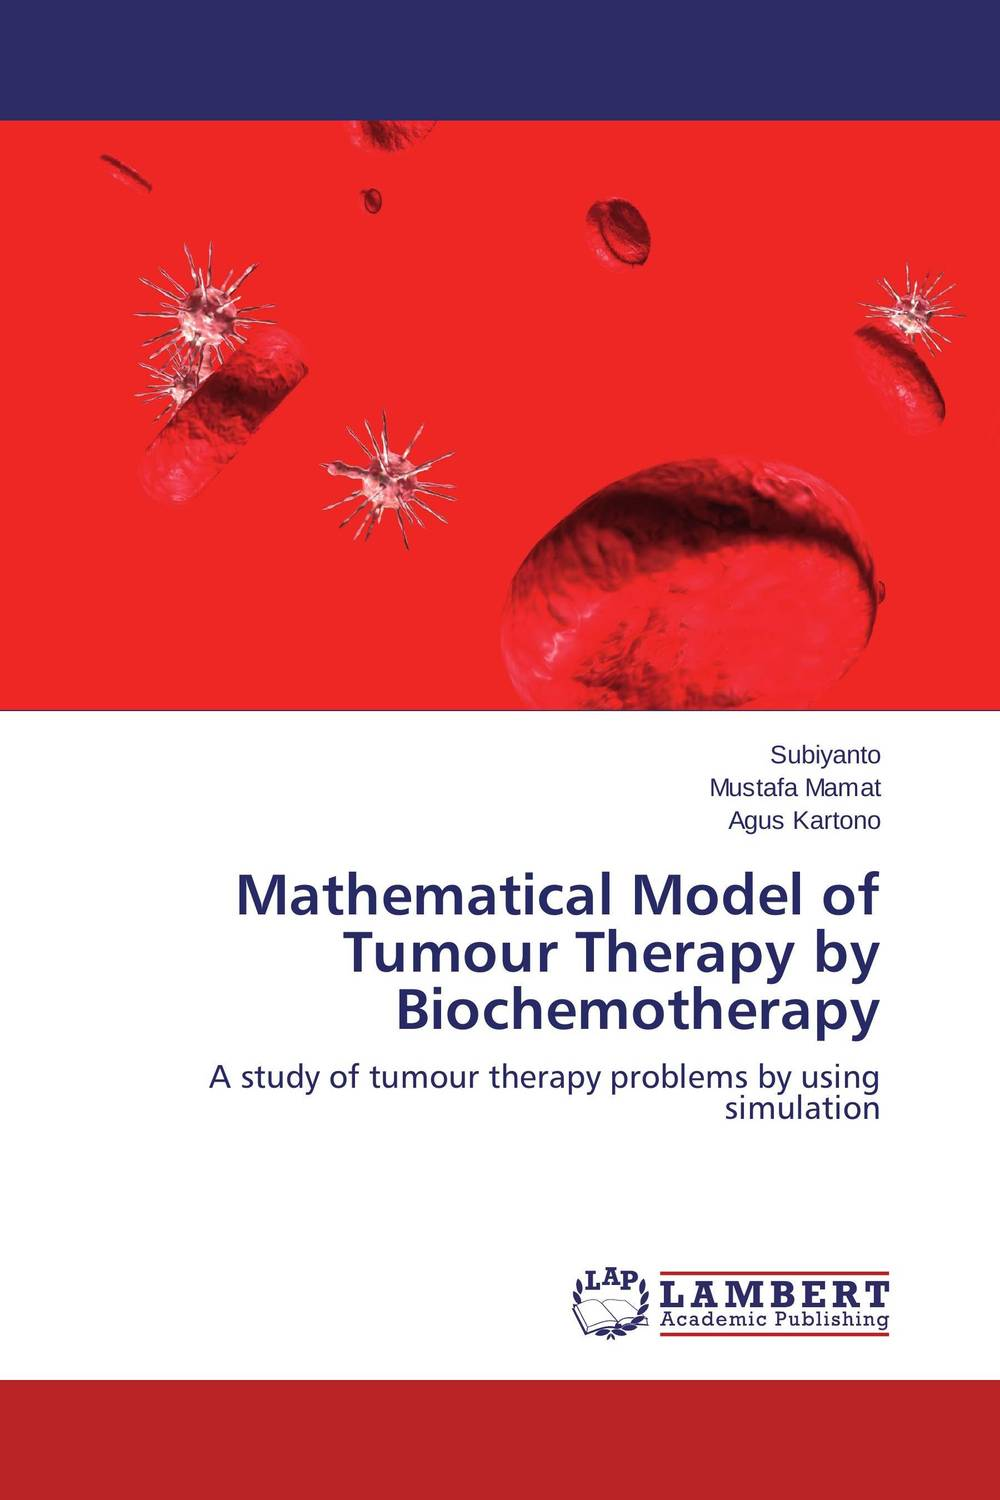 Mathematical Model of Tumour Therapy by Biochemotherapy